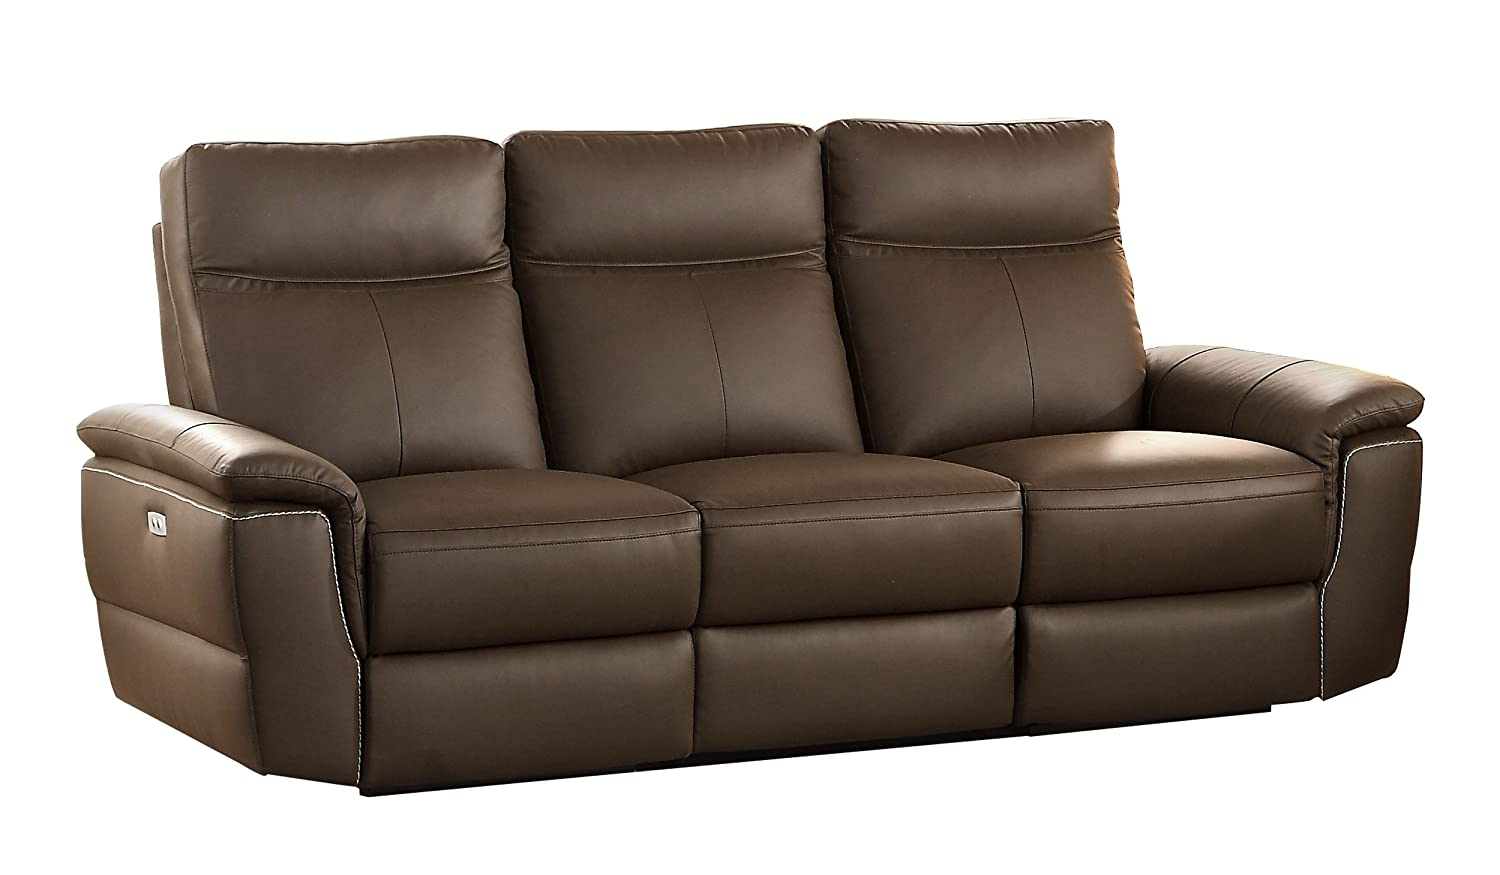 Amazon.com: Homelegance Olympia Modern Design Power Reclining Sofa ...